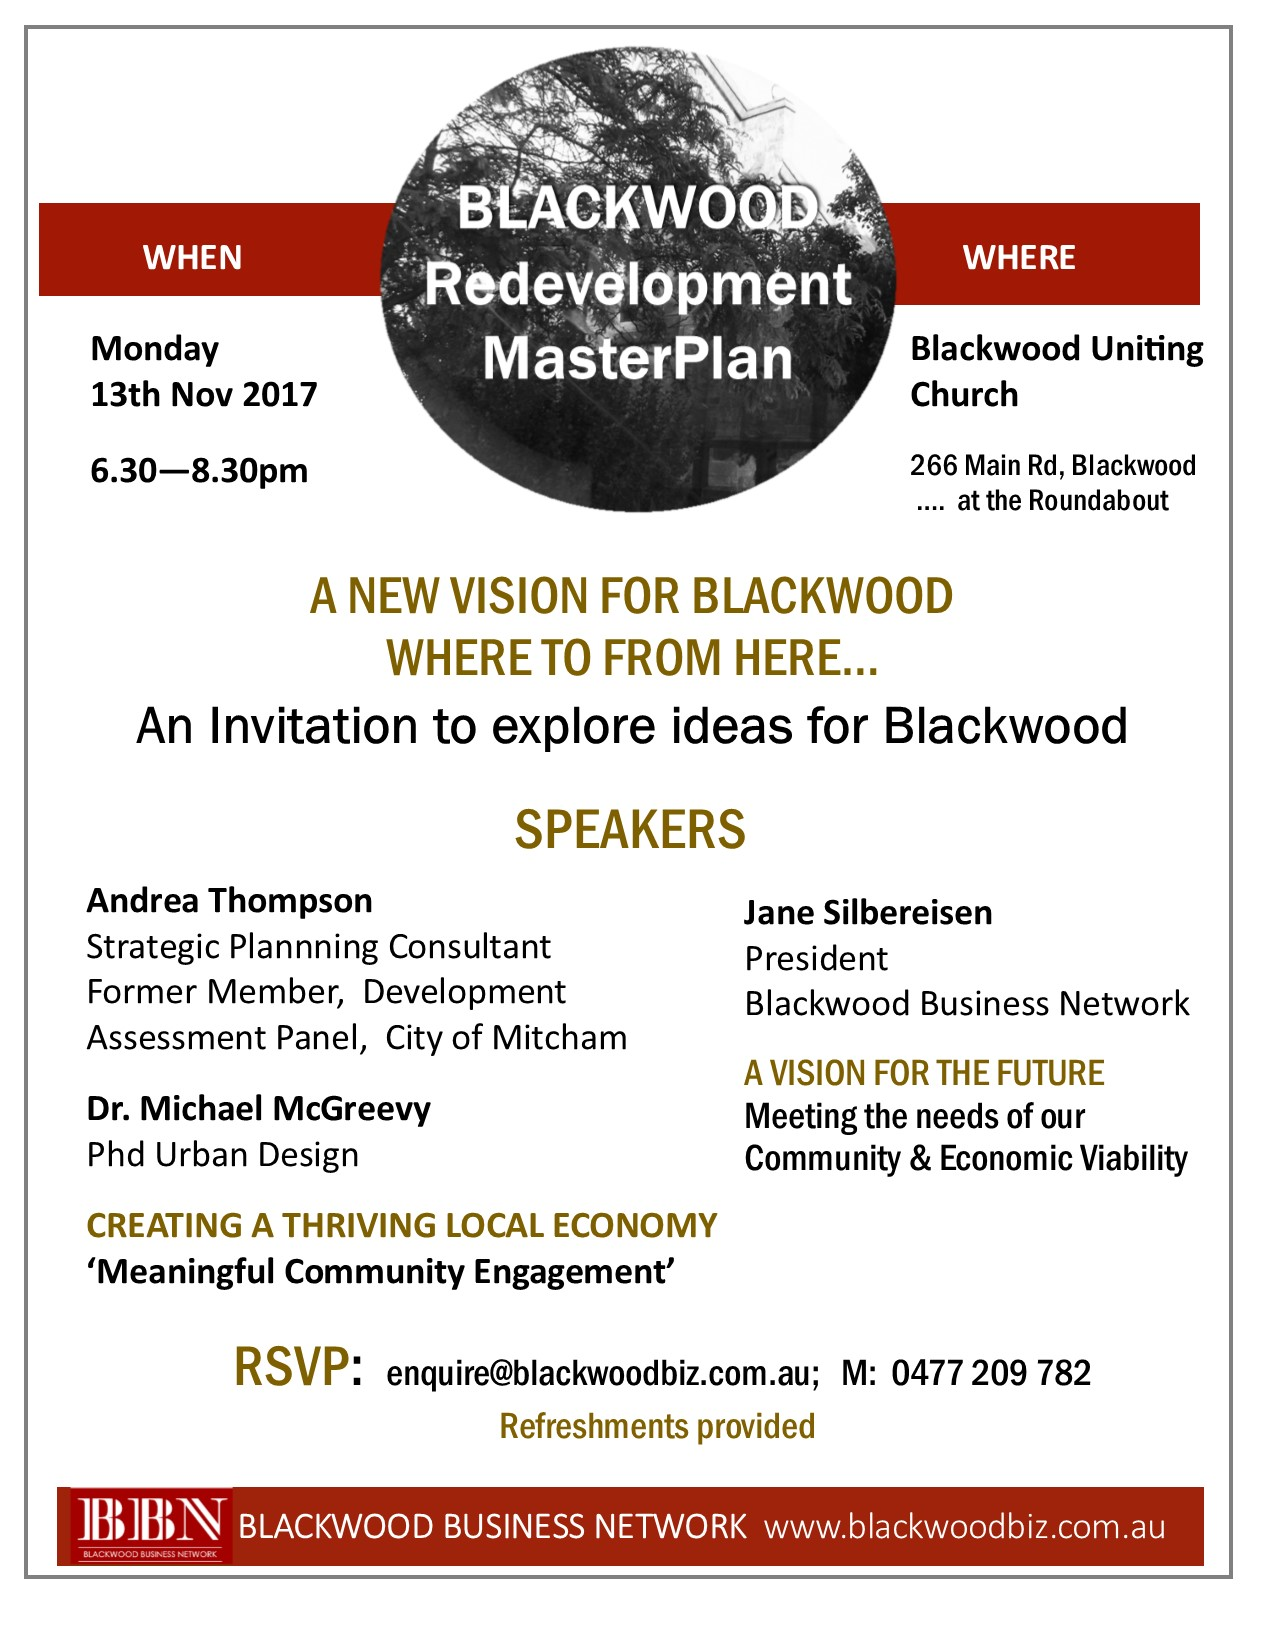 Blackwood Redevelopment MasterPlan Information Session